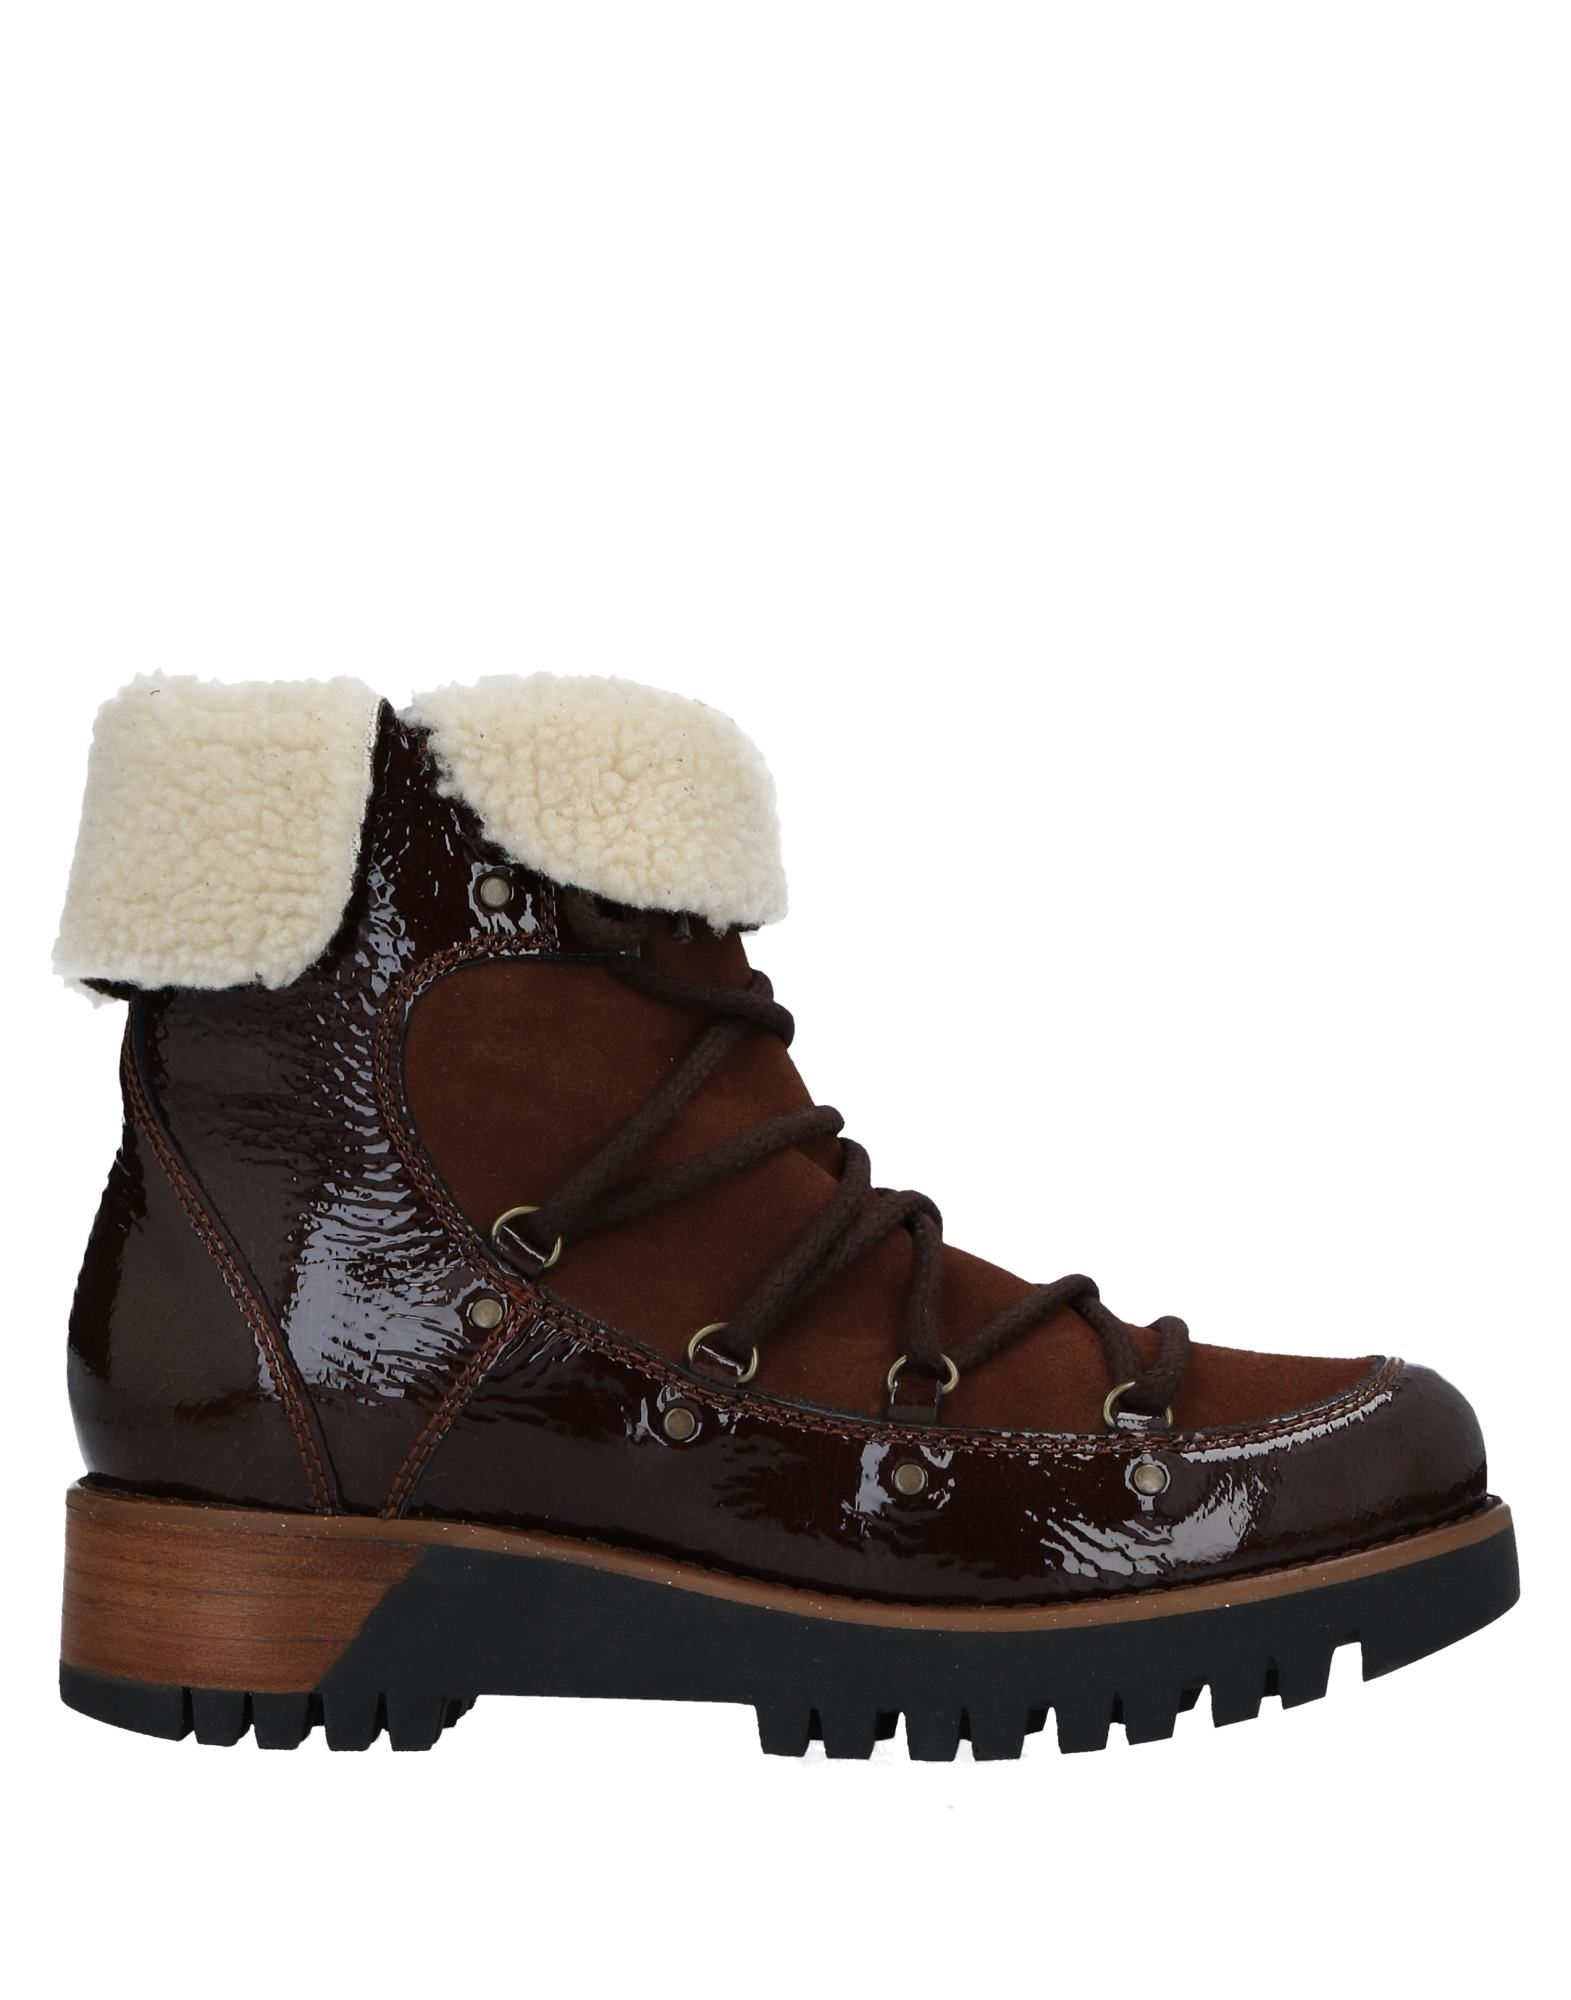 MANAS Ankle Boot in Cocoa